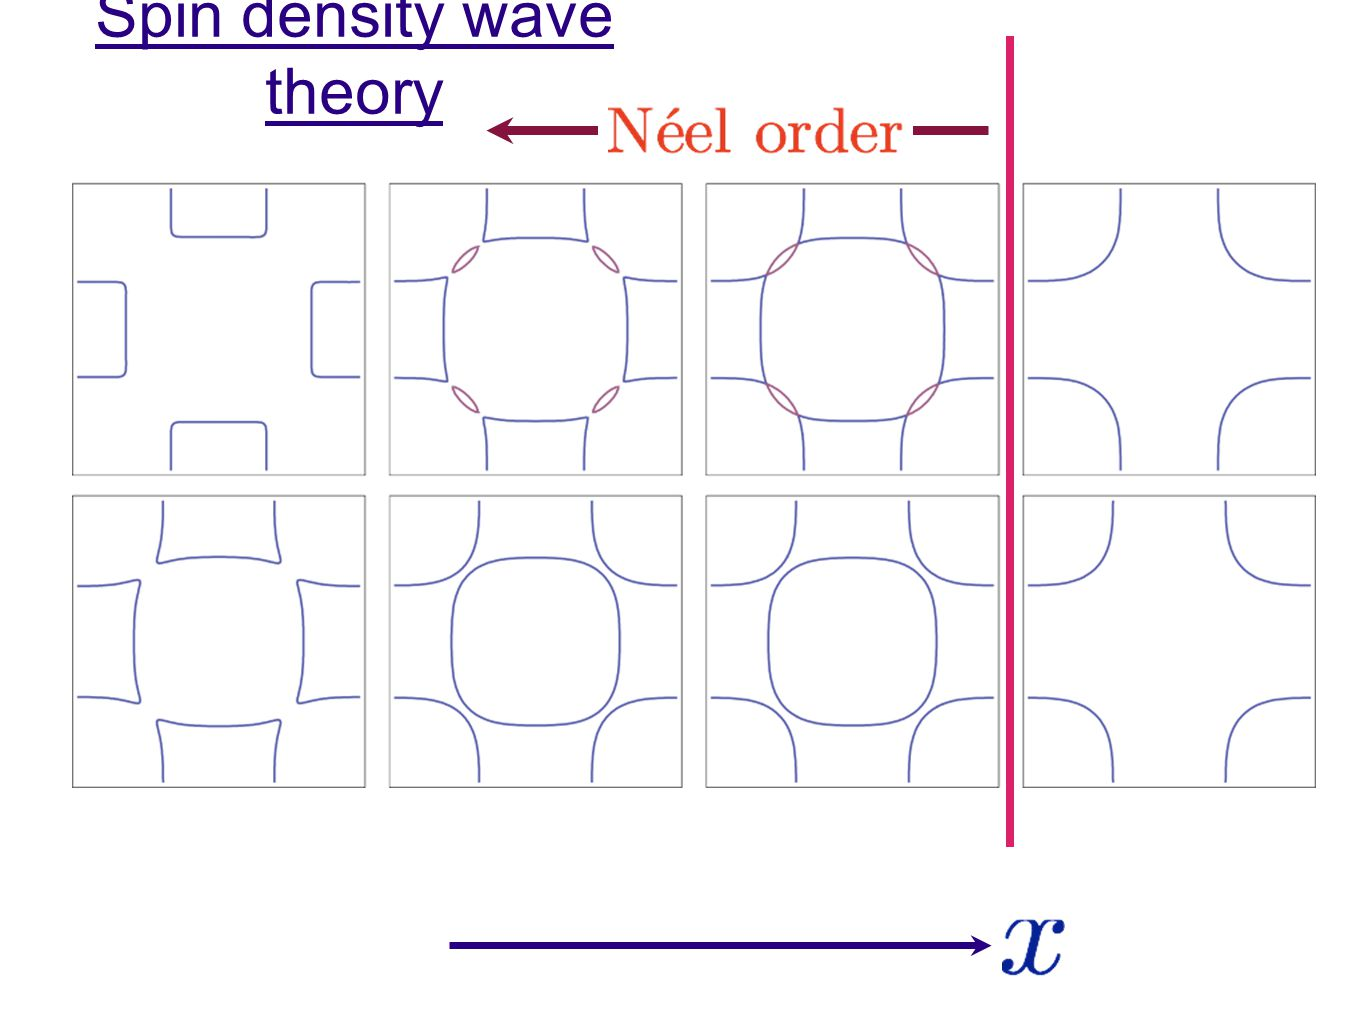 Spin density wave theory